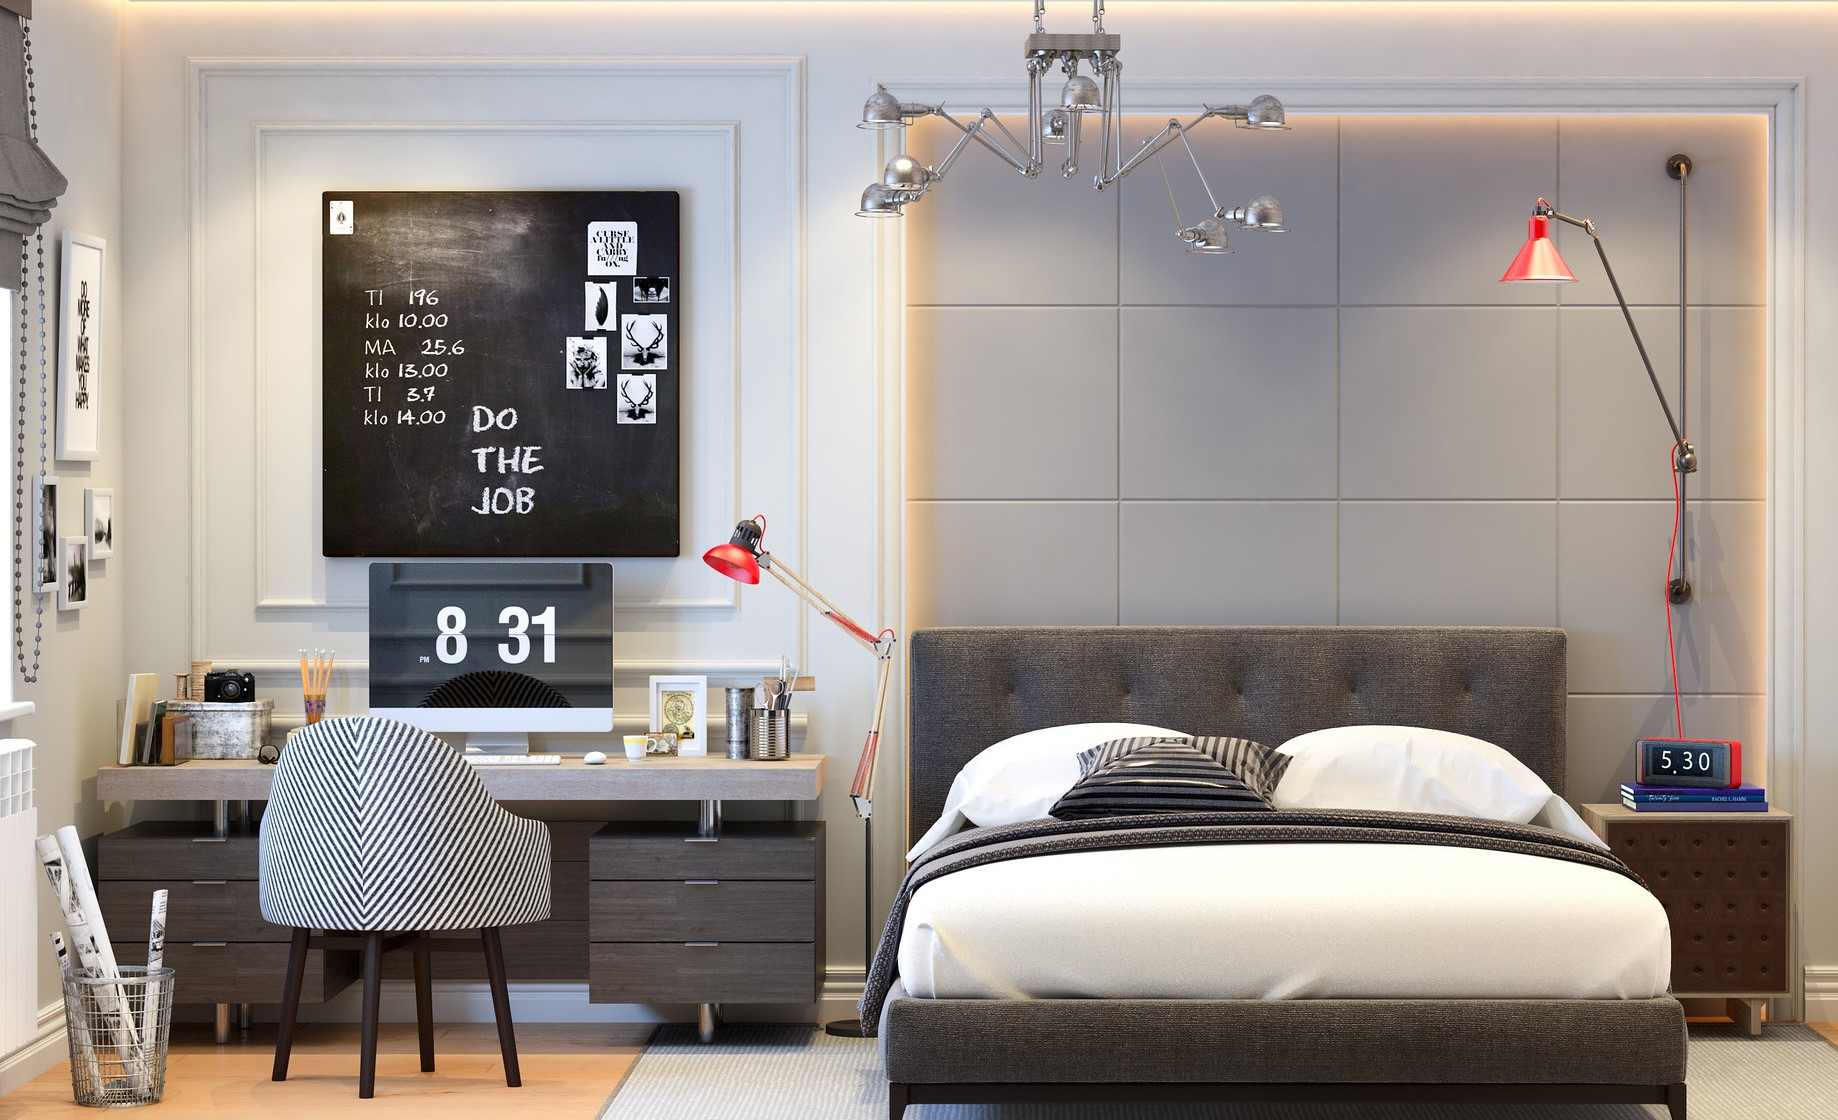 5 Teen Bedroom Ideas. How to Decorate a Teen Room?